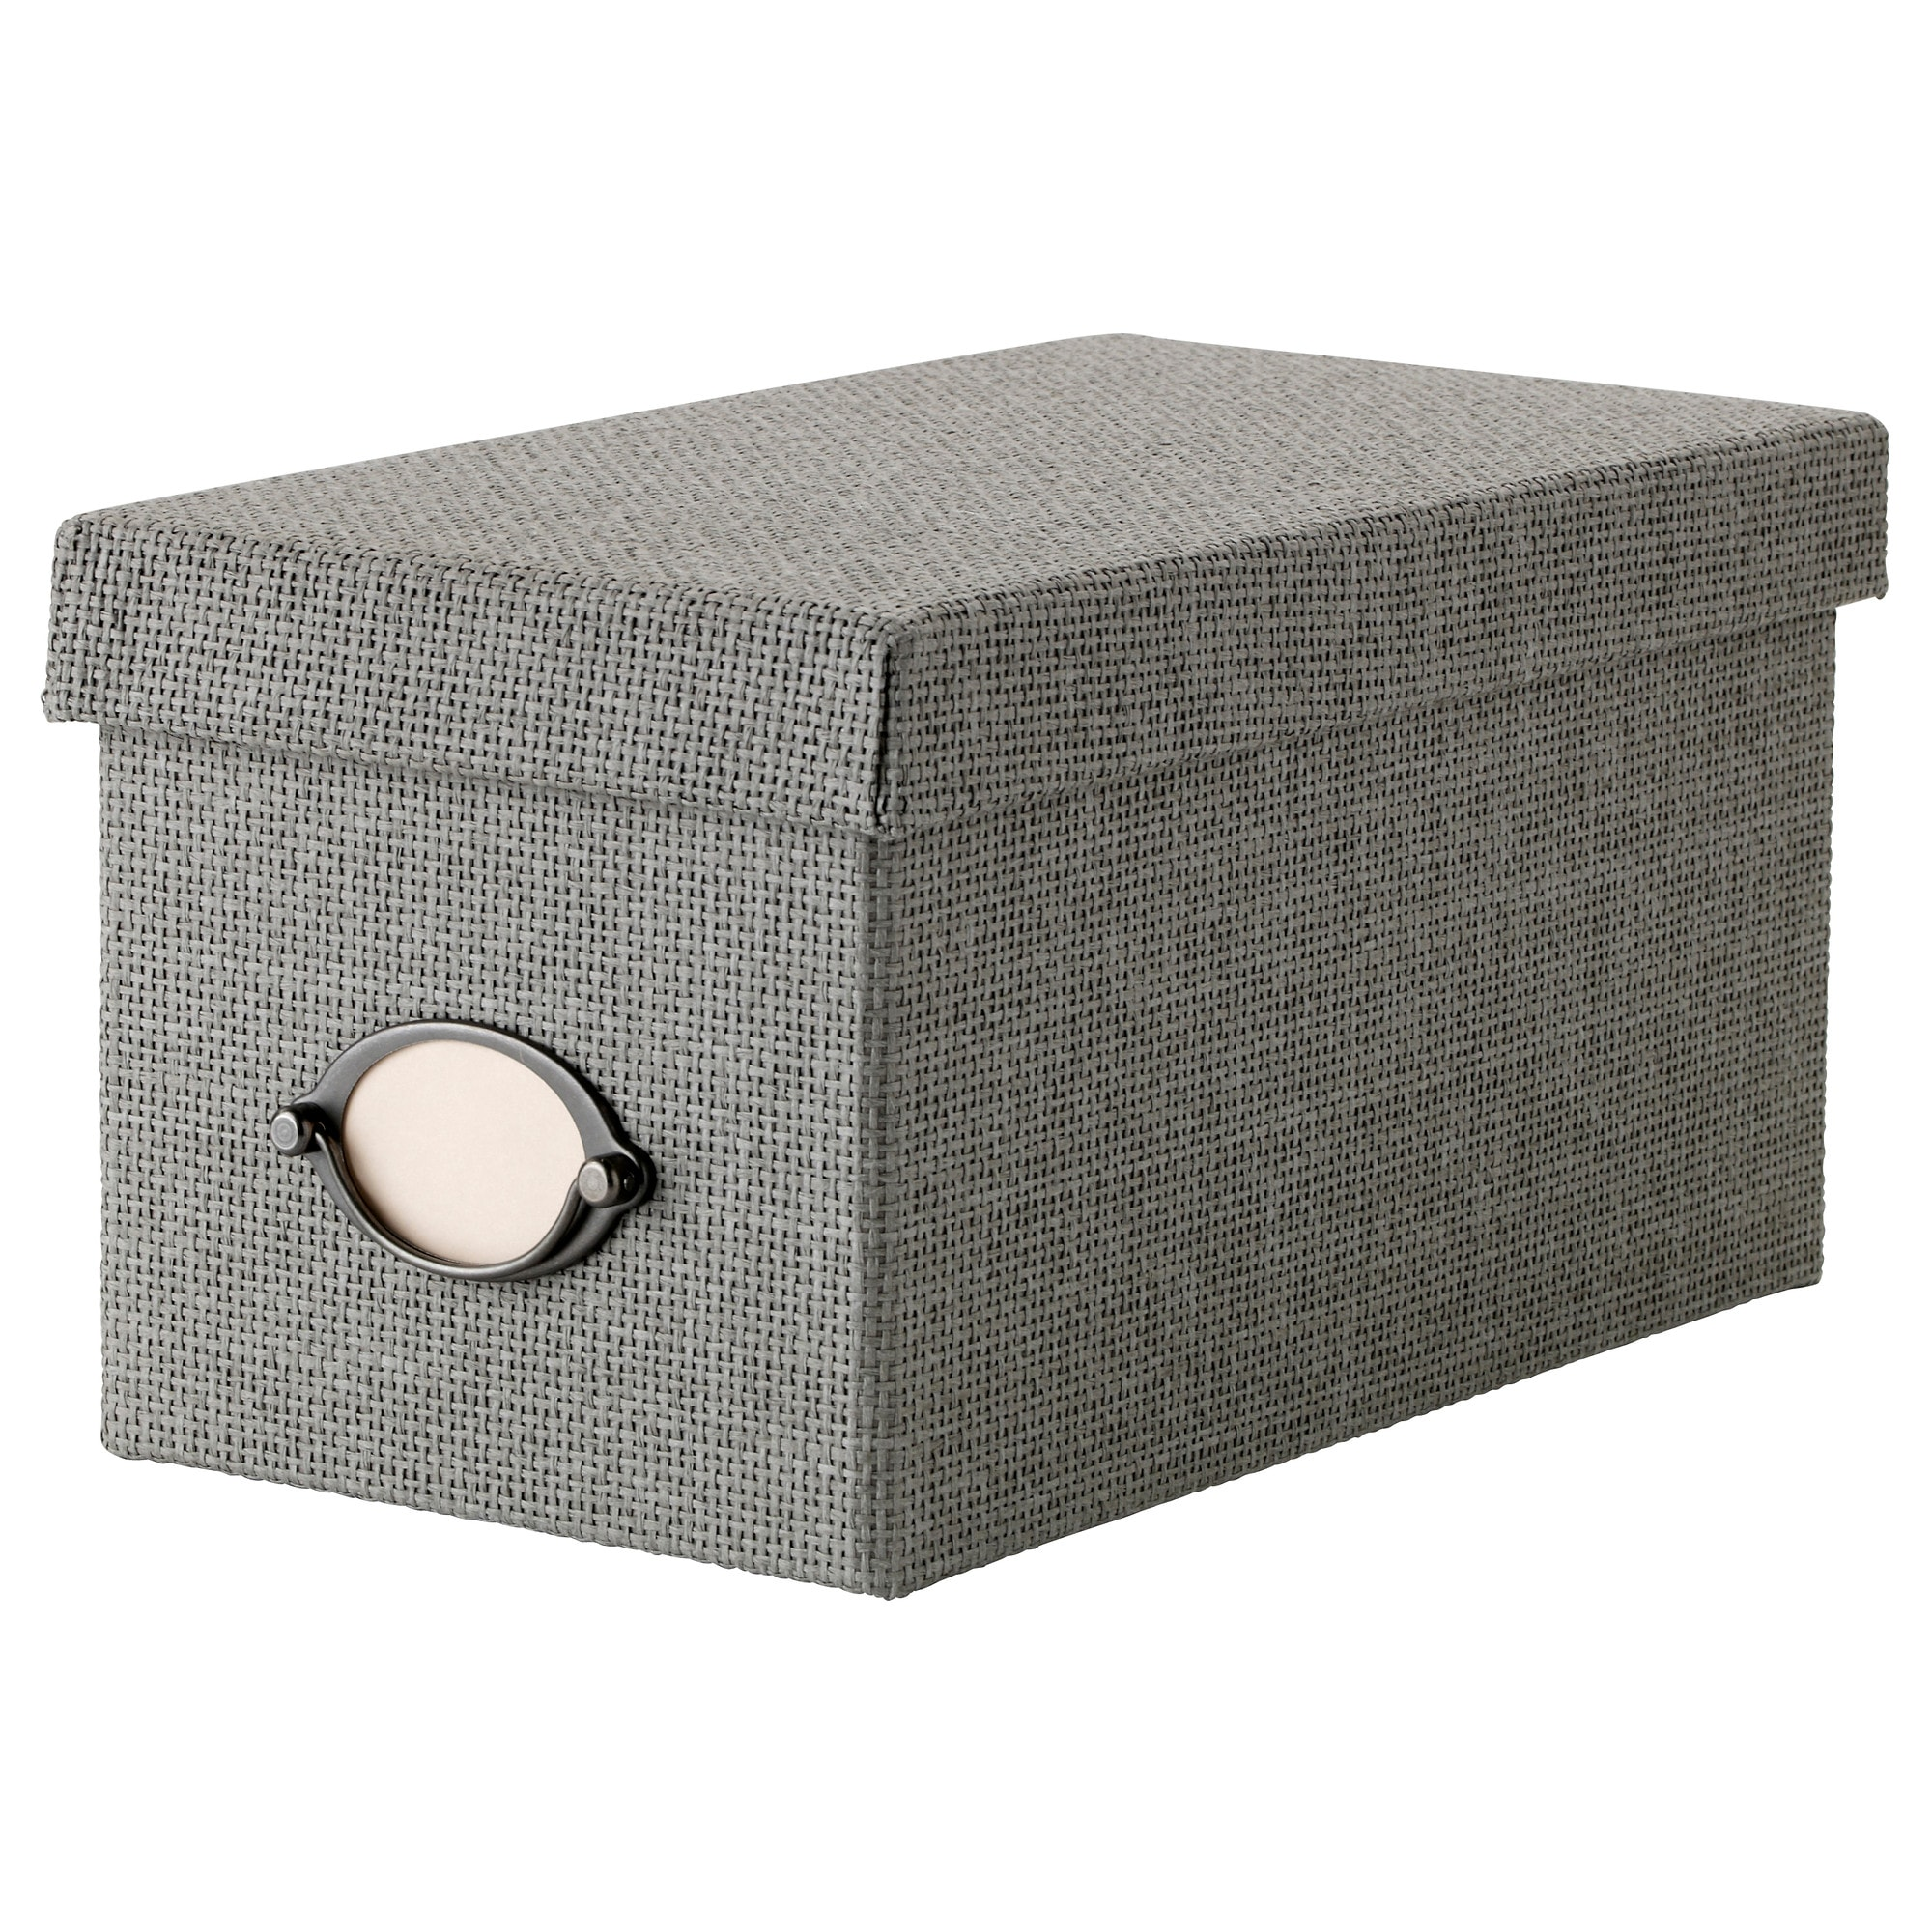 kvarnvik box with lid gray length 12 width 13 - Decorative File Boxes